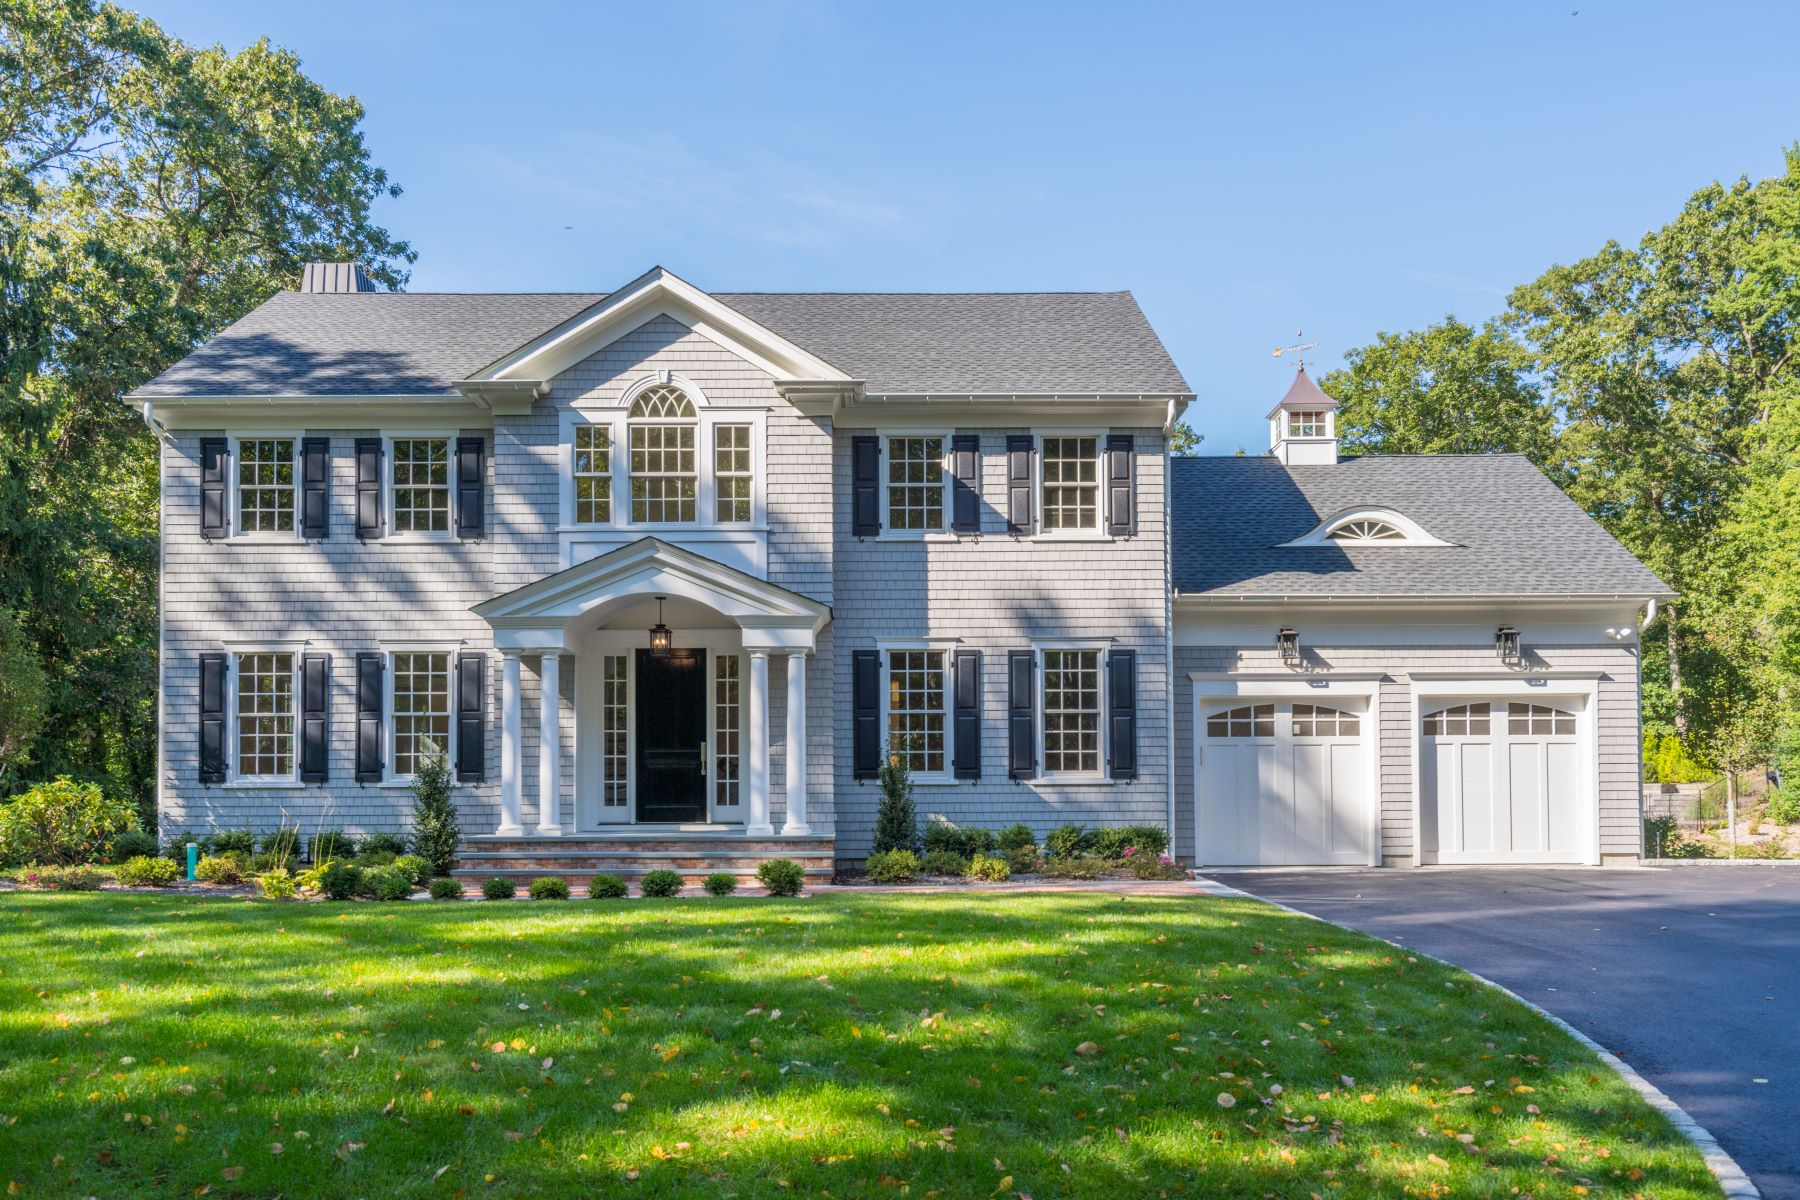 Single Family Homes for Sale at Cold Spring Hrbr 74 Wilton Rd Cold Spring Harbor, New York 11724 United States